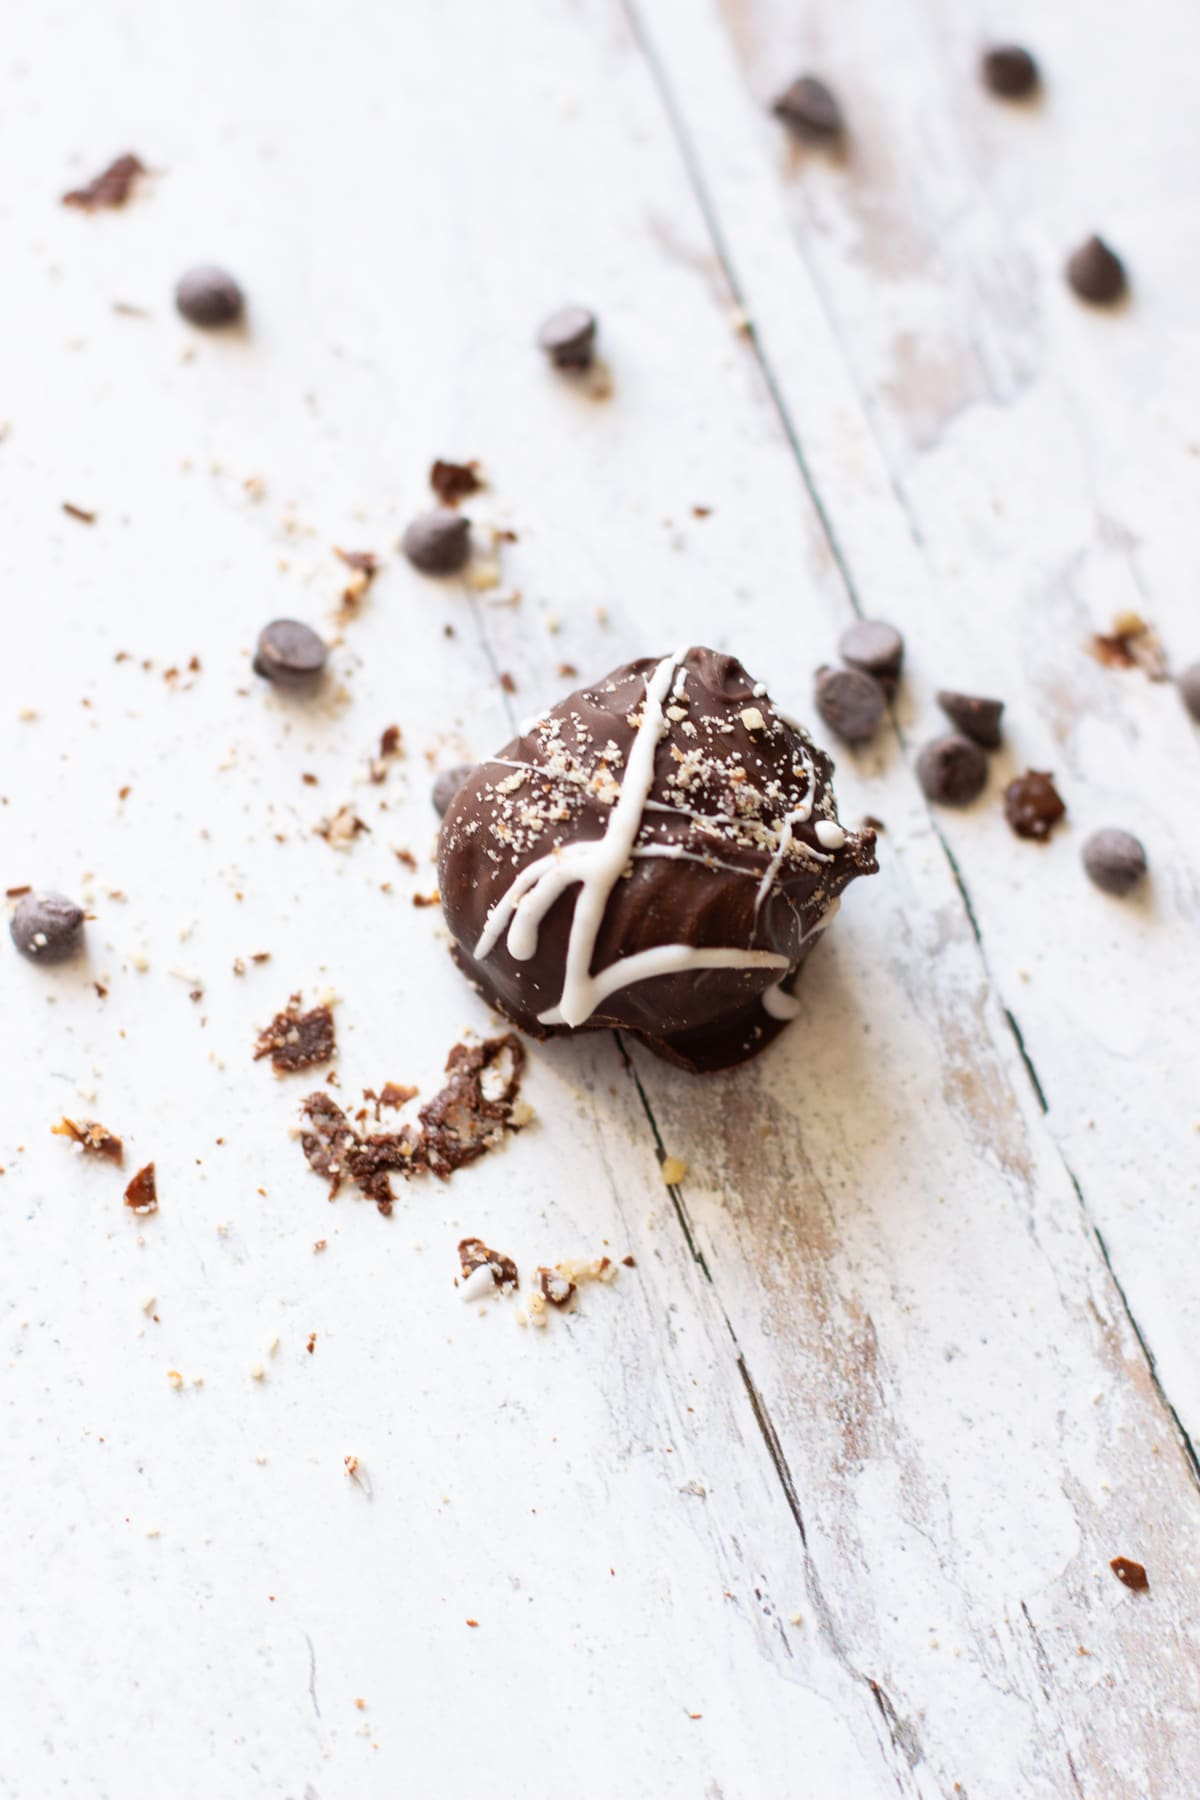 An amaretto truffle ball on a counter.